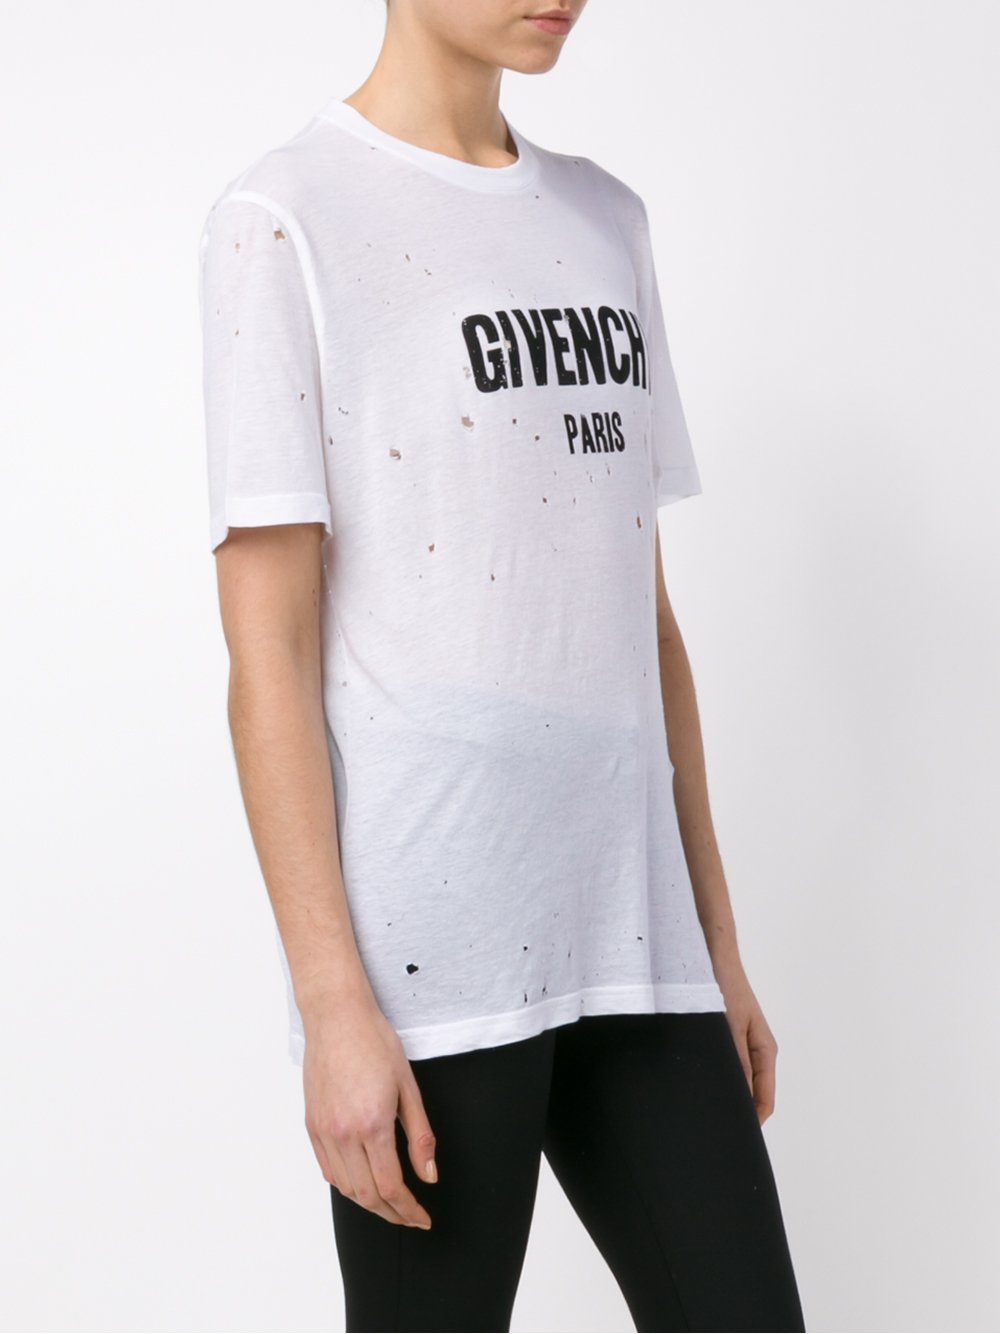 Givenchy White T-shirt with hole